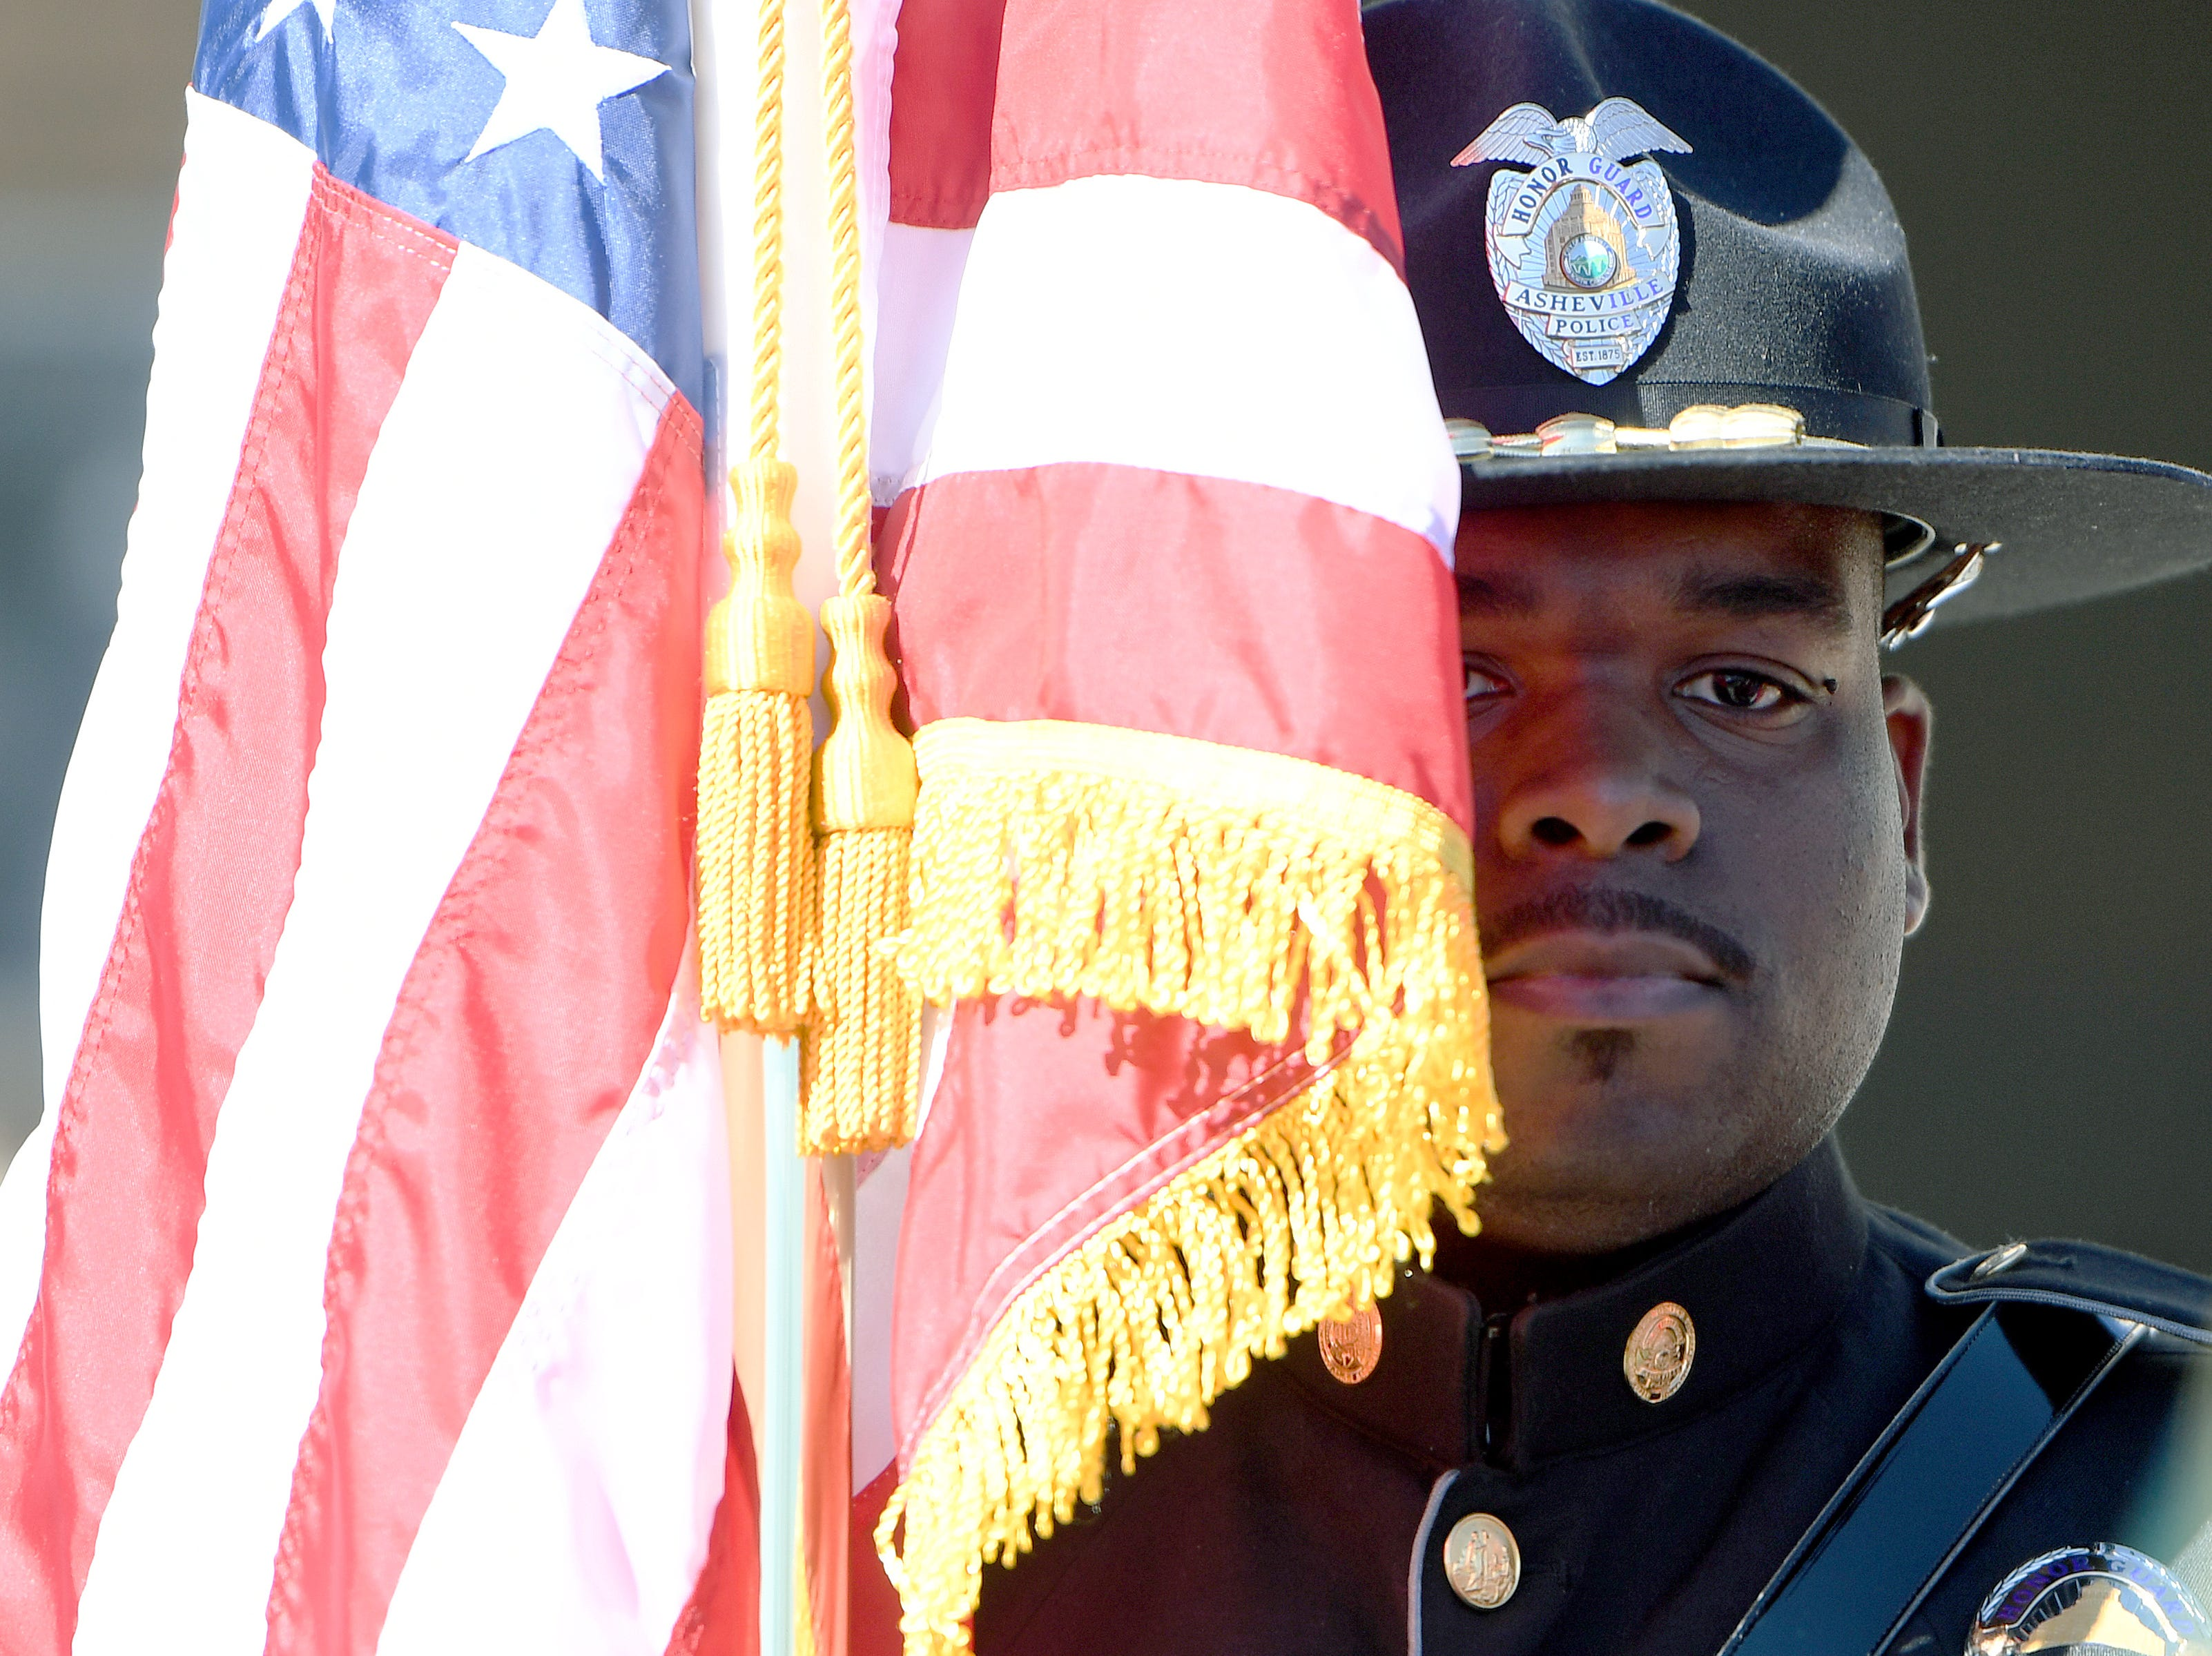 The Asheville Police Department honor guard presents the flag at a ceremony to dedicate a portion of Old Haywood Road to Asheville police officer Robert Bingaman at the Traffic Safety Office on the five-year-anniversary of his death on Oct. 29, 2018.